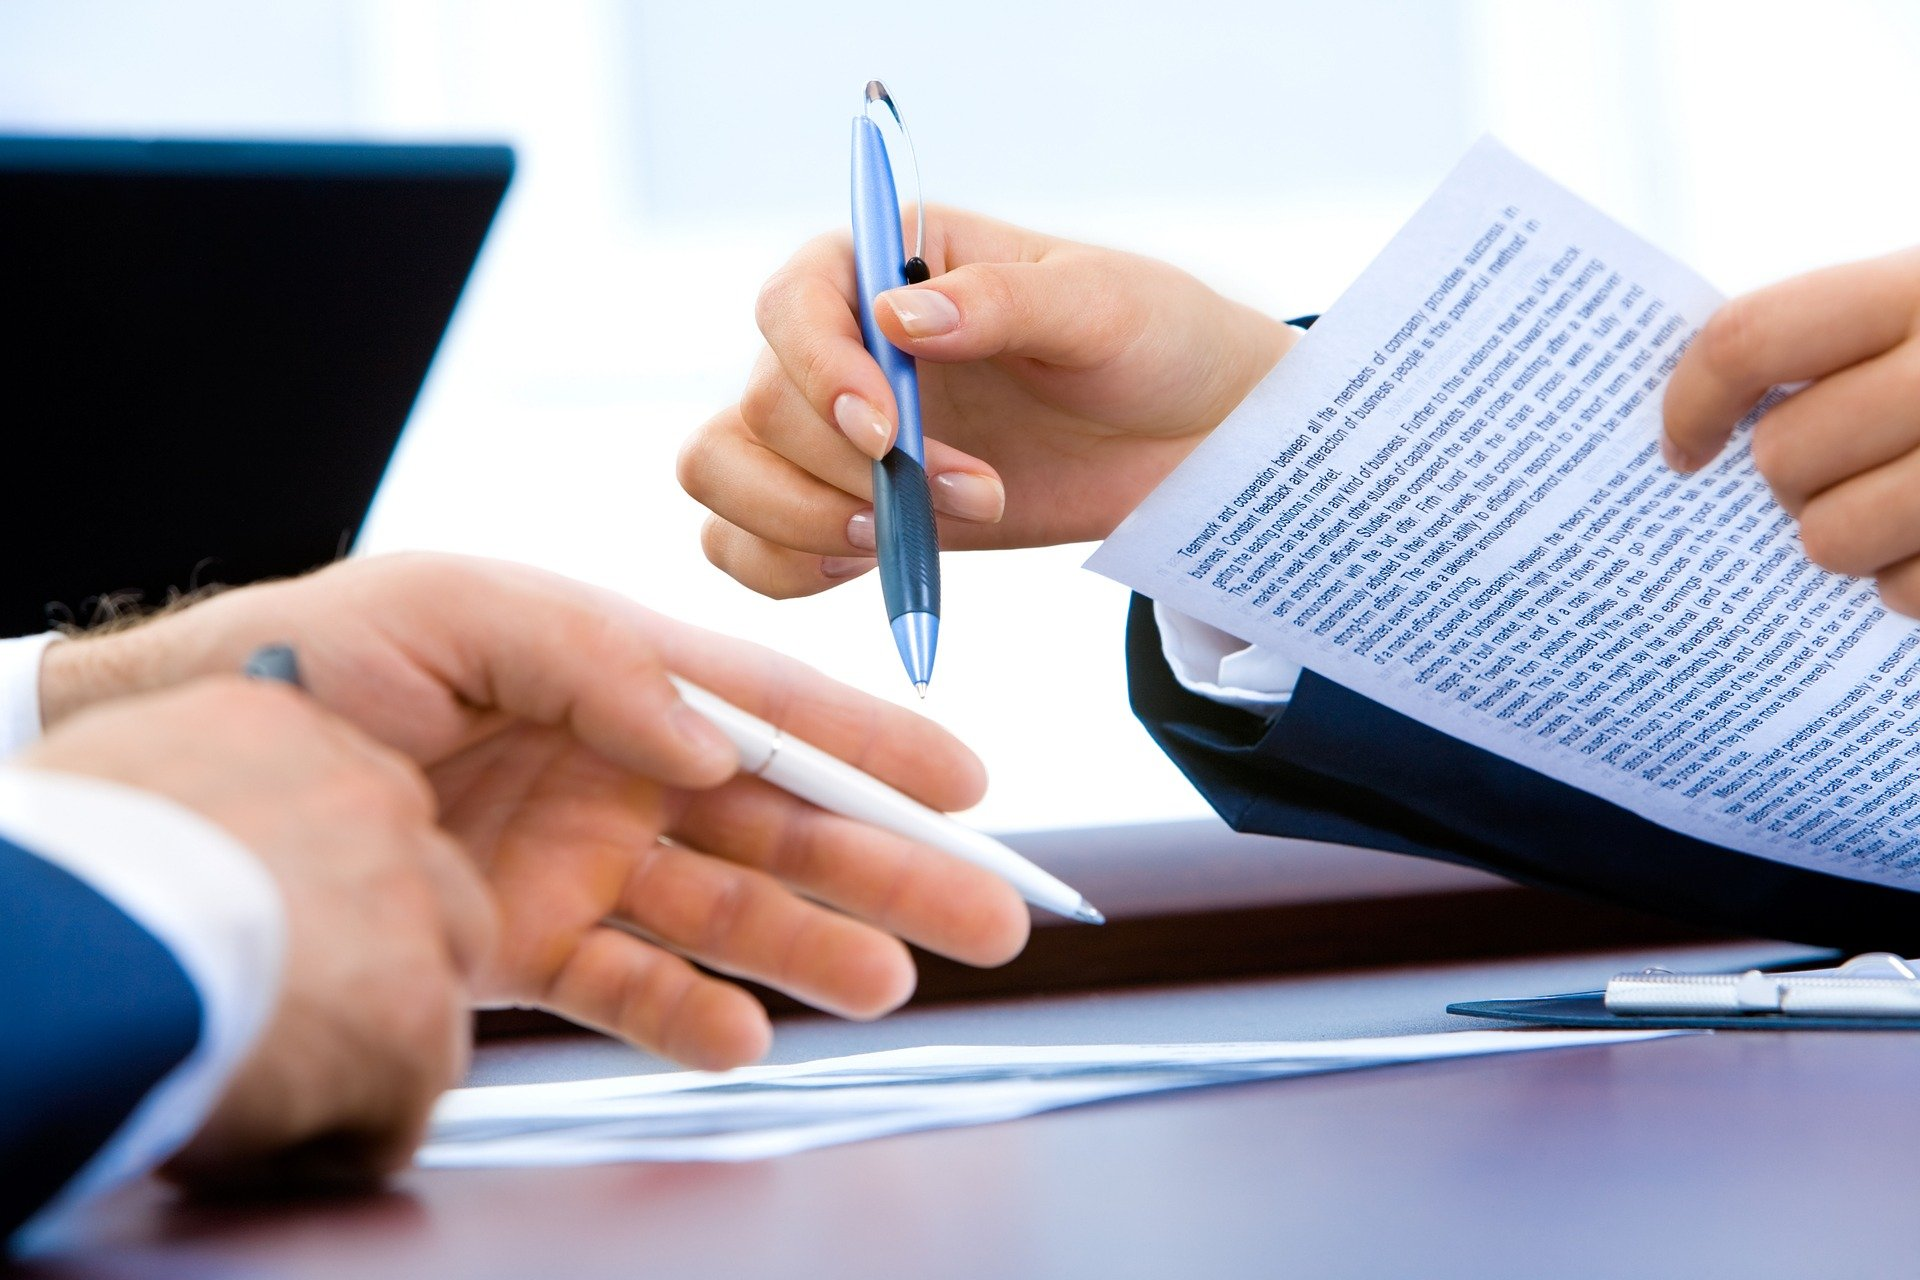 Academic Paper Writing – An Essential Role of a Paper Writer post thumbnail image